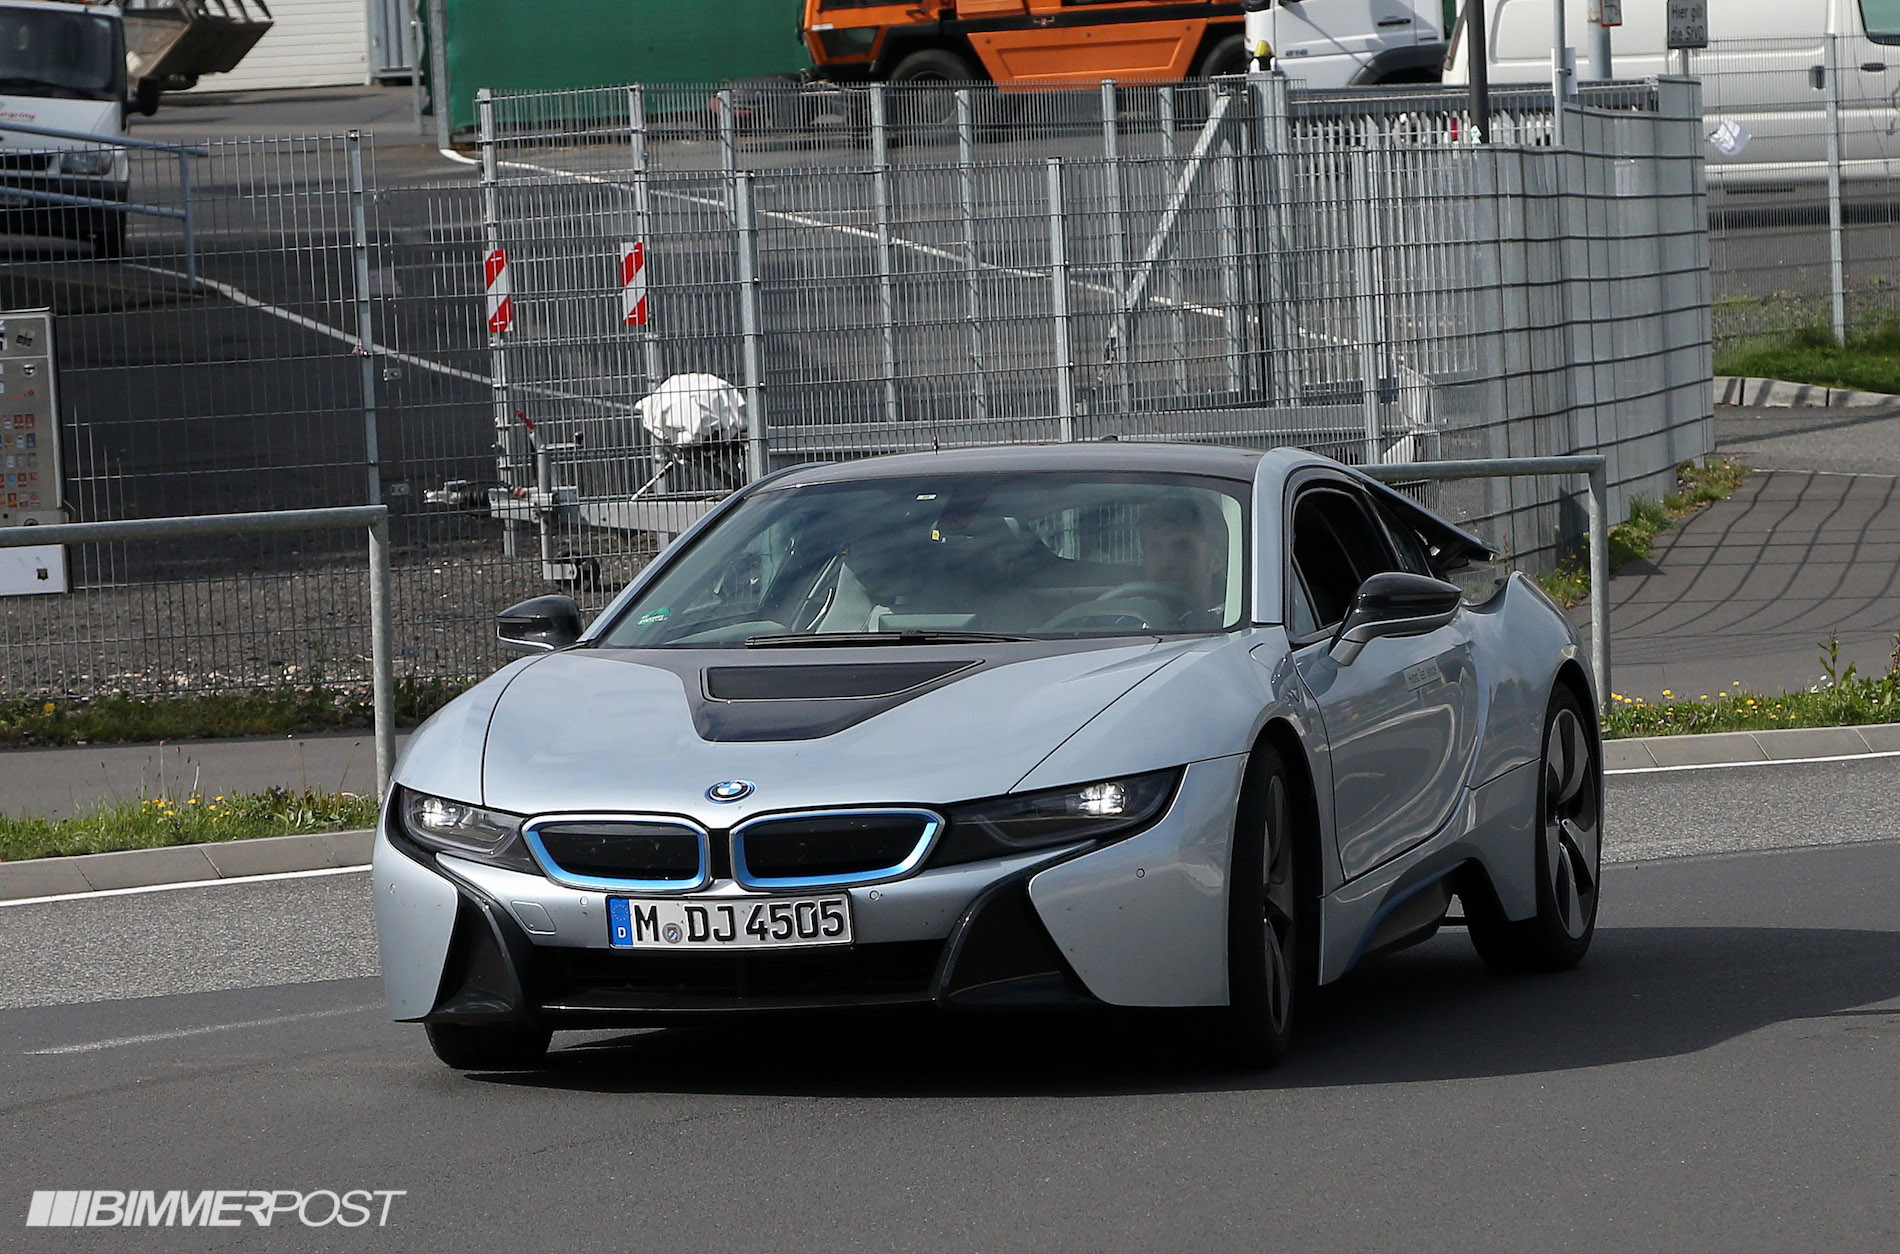 Bmw I8 Models Spotted In The Wild Looking Like Something From The Future